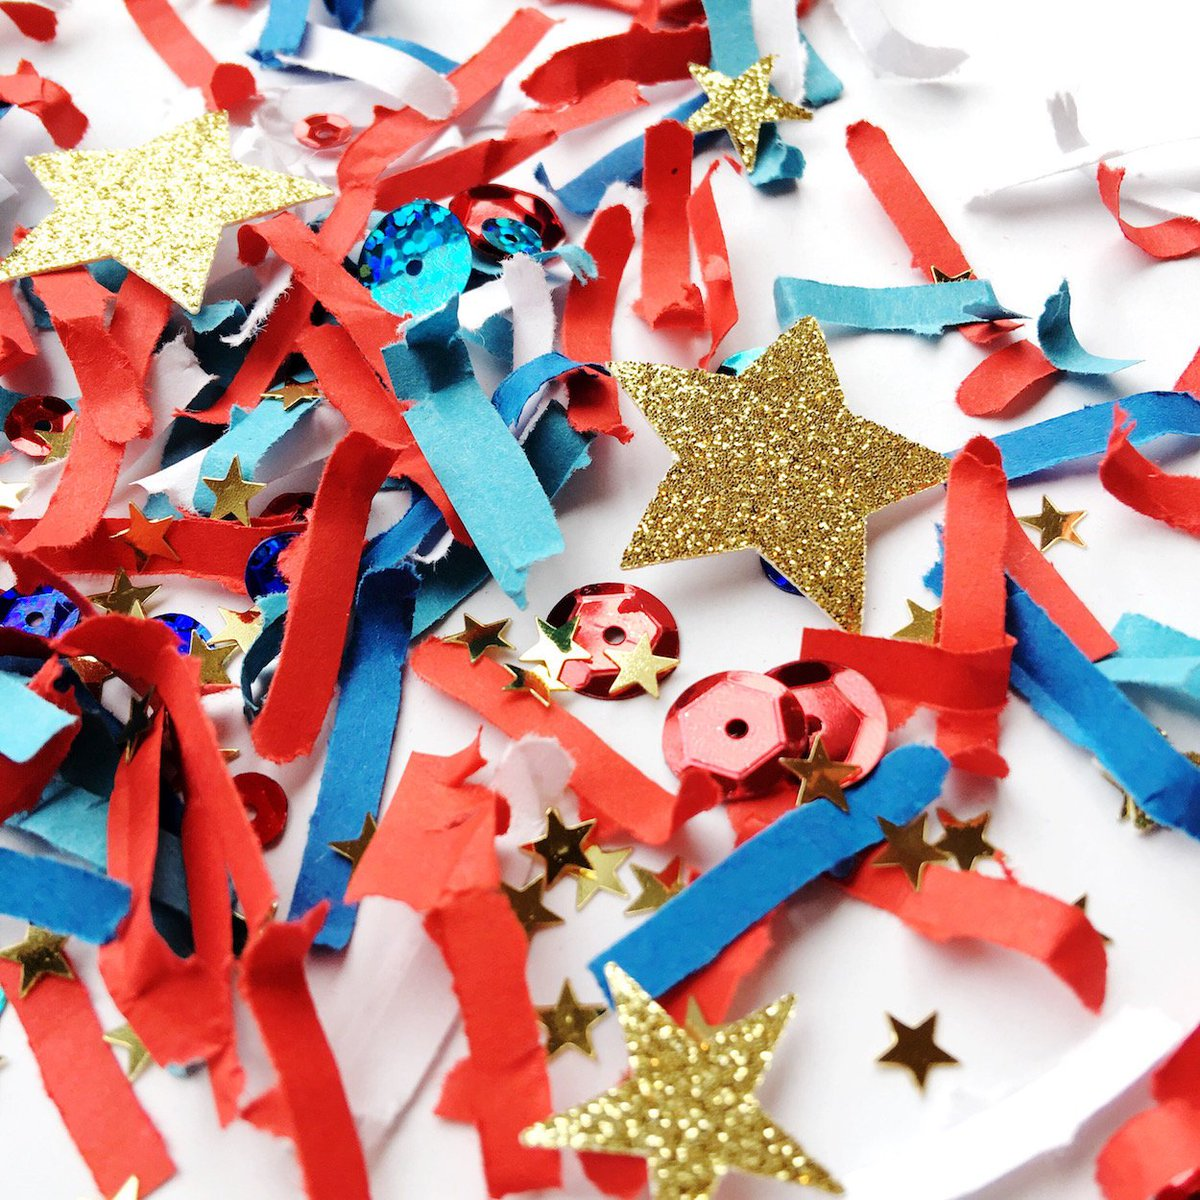 fec330cda80a17 You can join in the celebration of the Royal Wedding with this Festive  Fetti Confetti. This red and blue confetti mix will be the perfect party  decoration ...